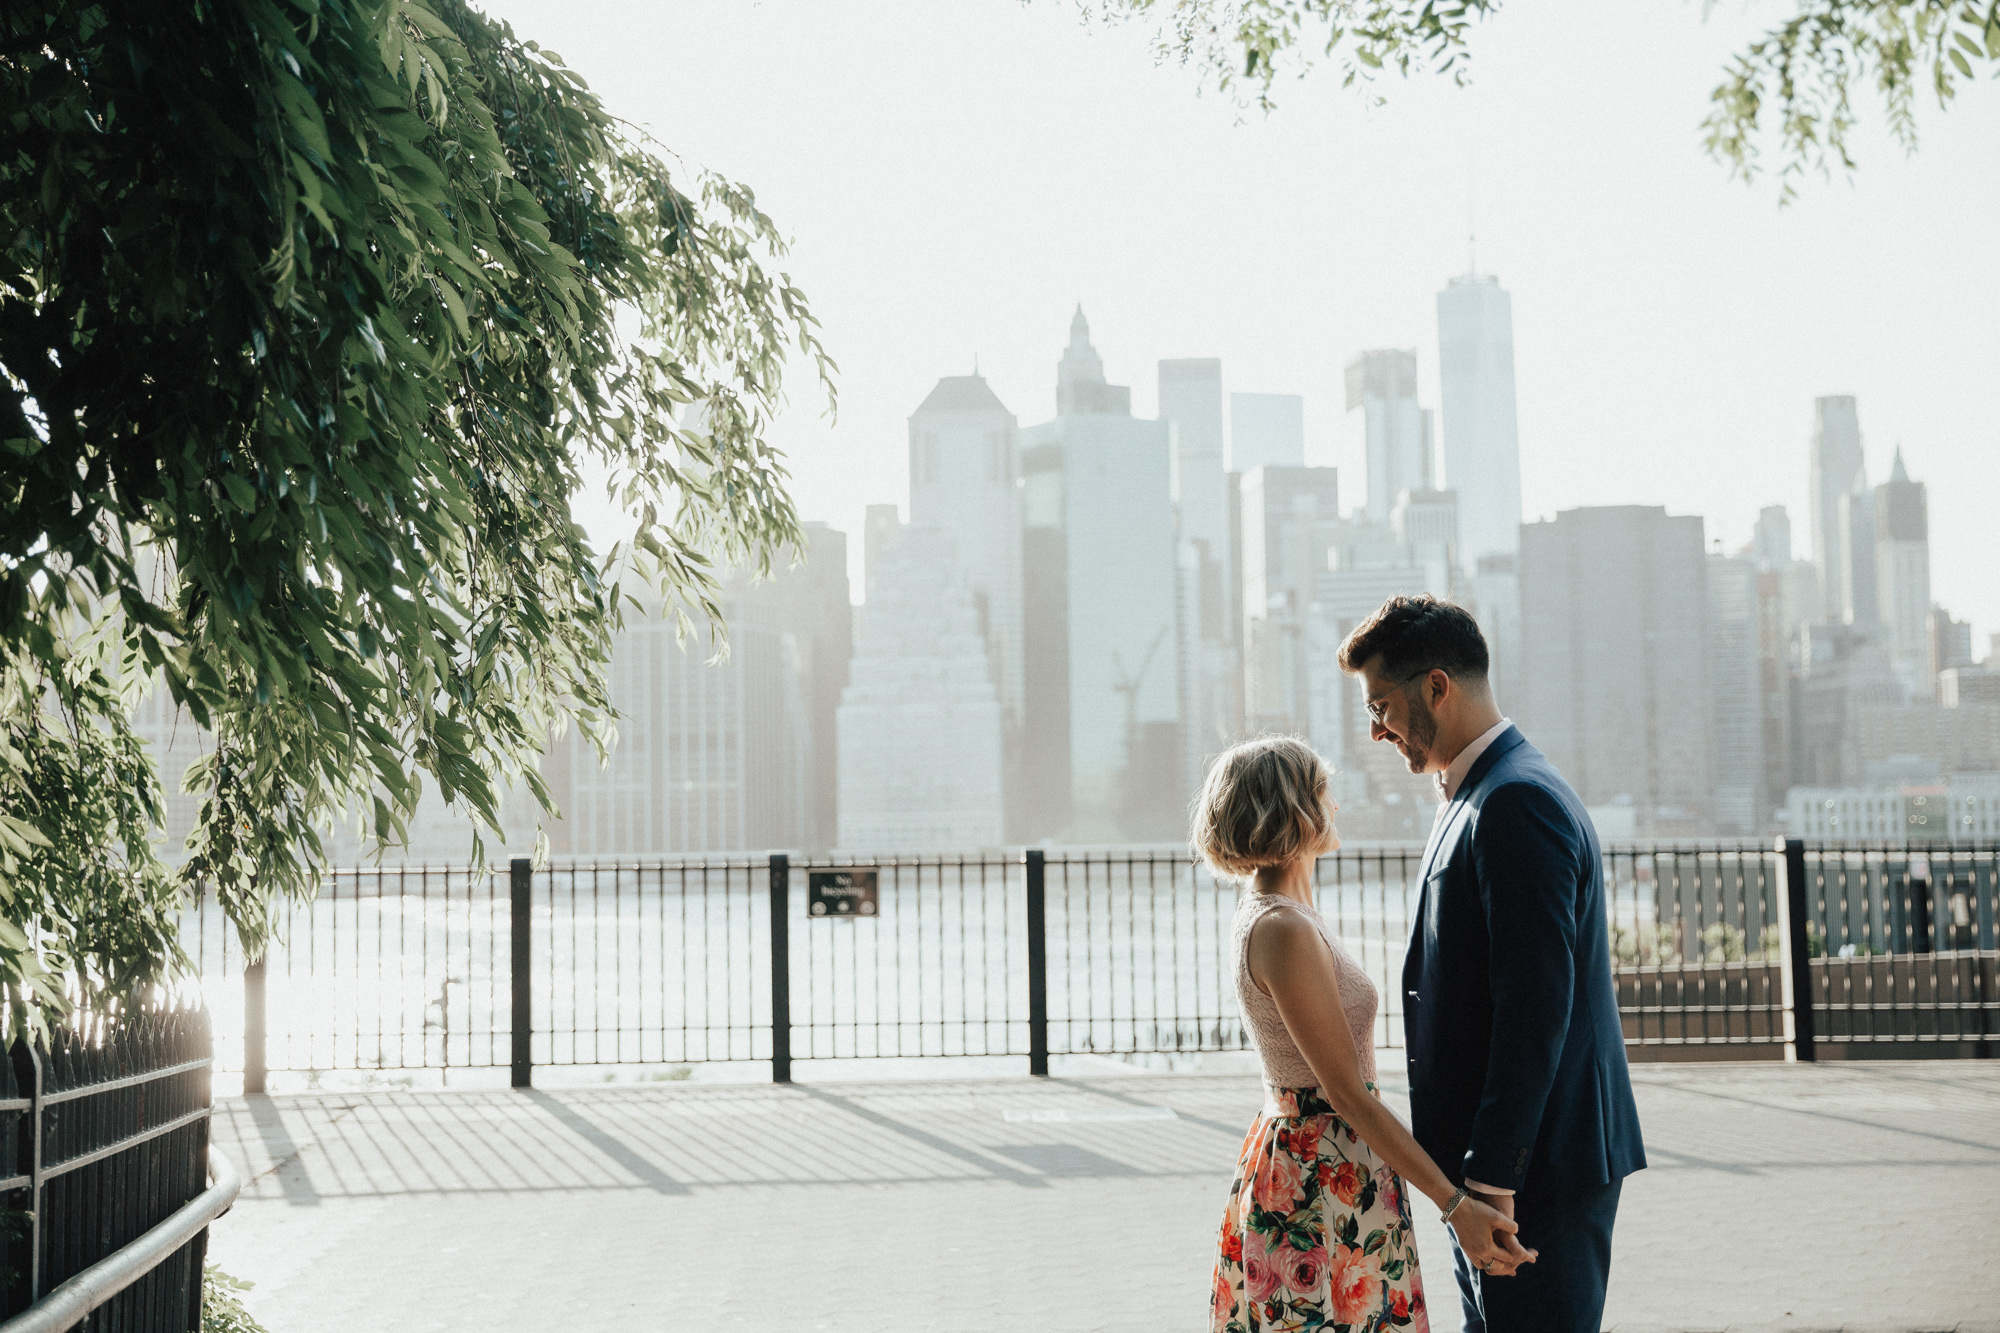 brooklyn_nyc_engagement_photography-24-of-83.jpg